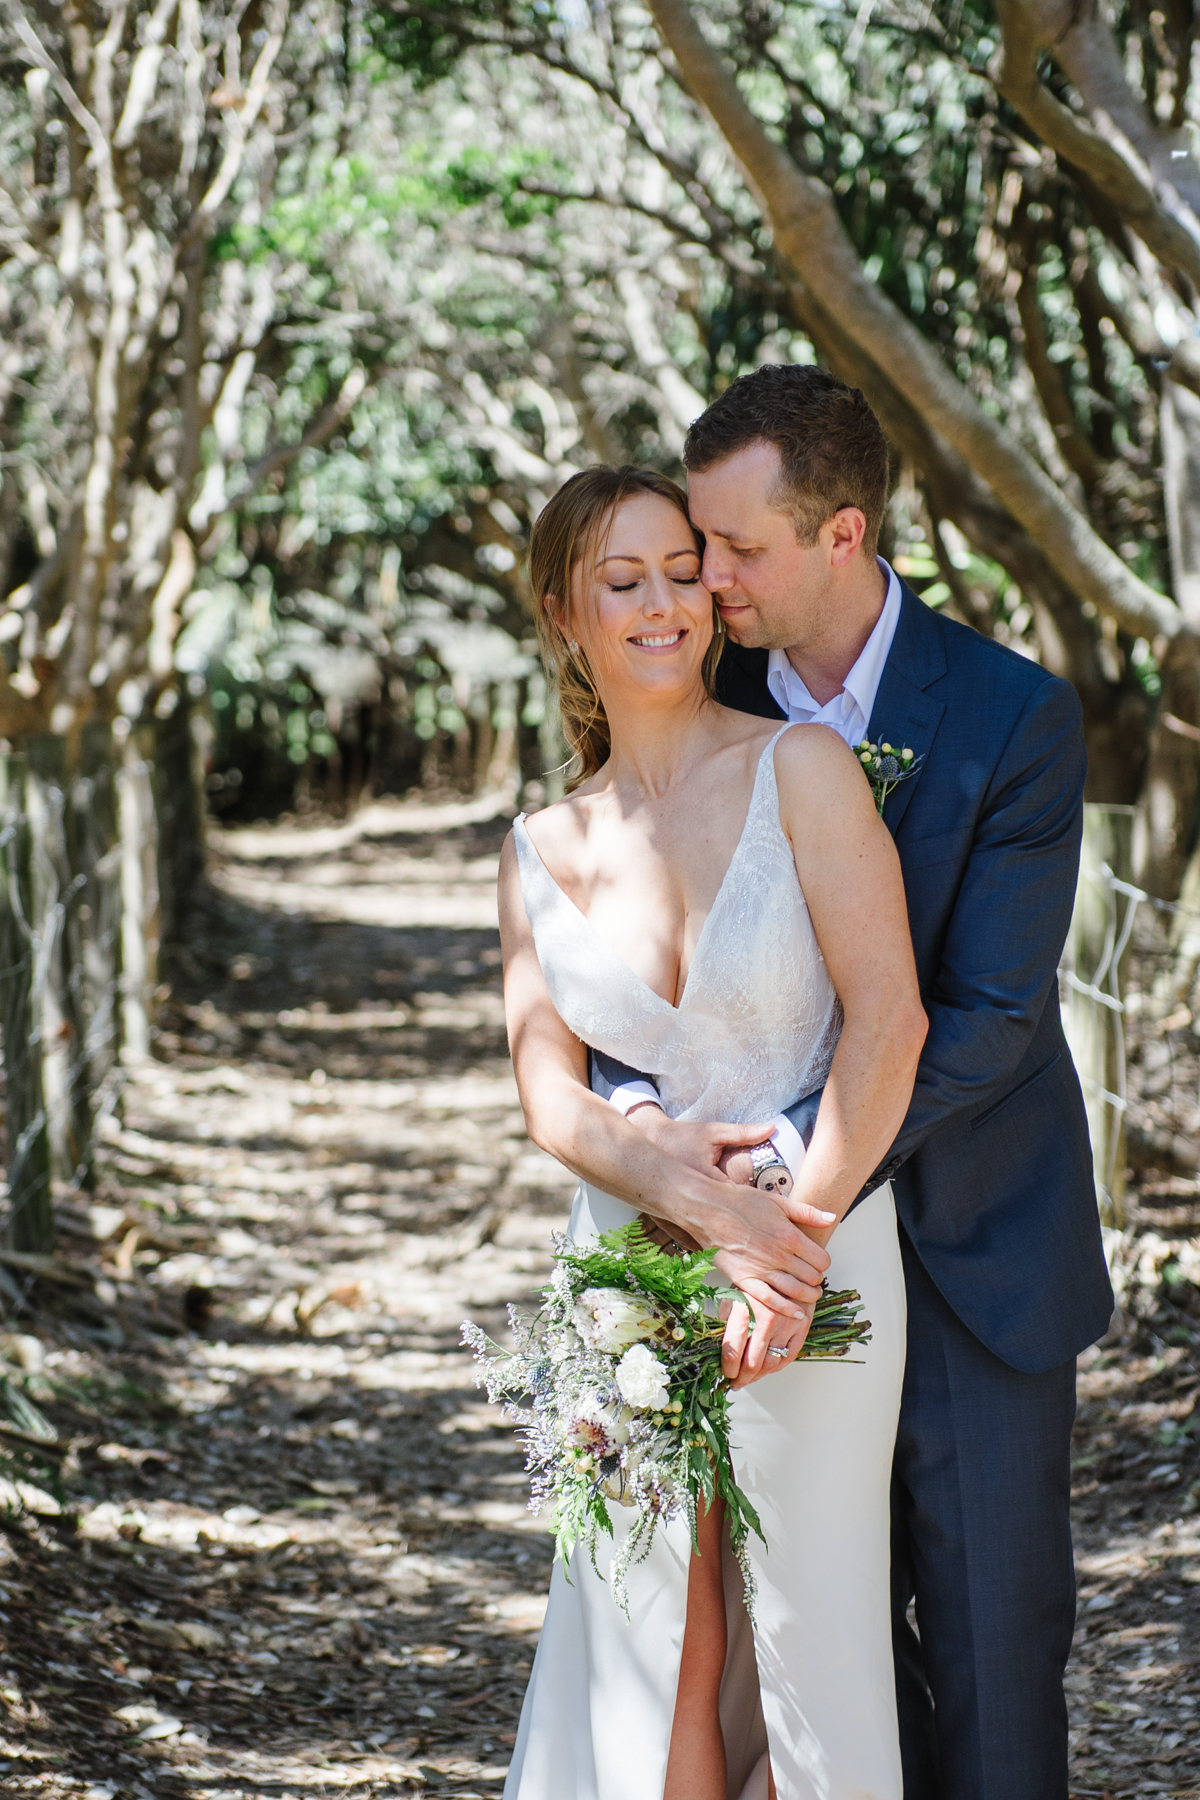 Jo and Andrew- wedding photographer, byron bay wedding and family photographer, tweed heads wedding and family photography-359.jpg